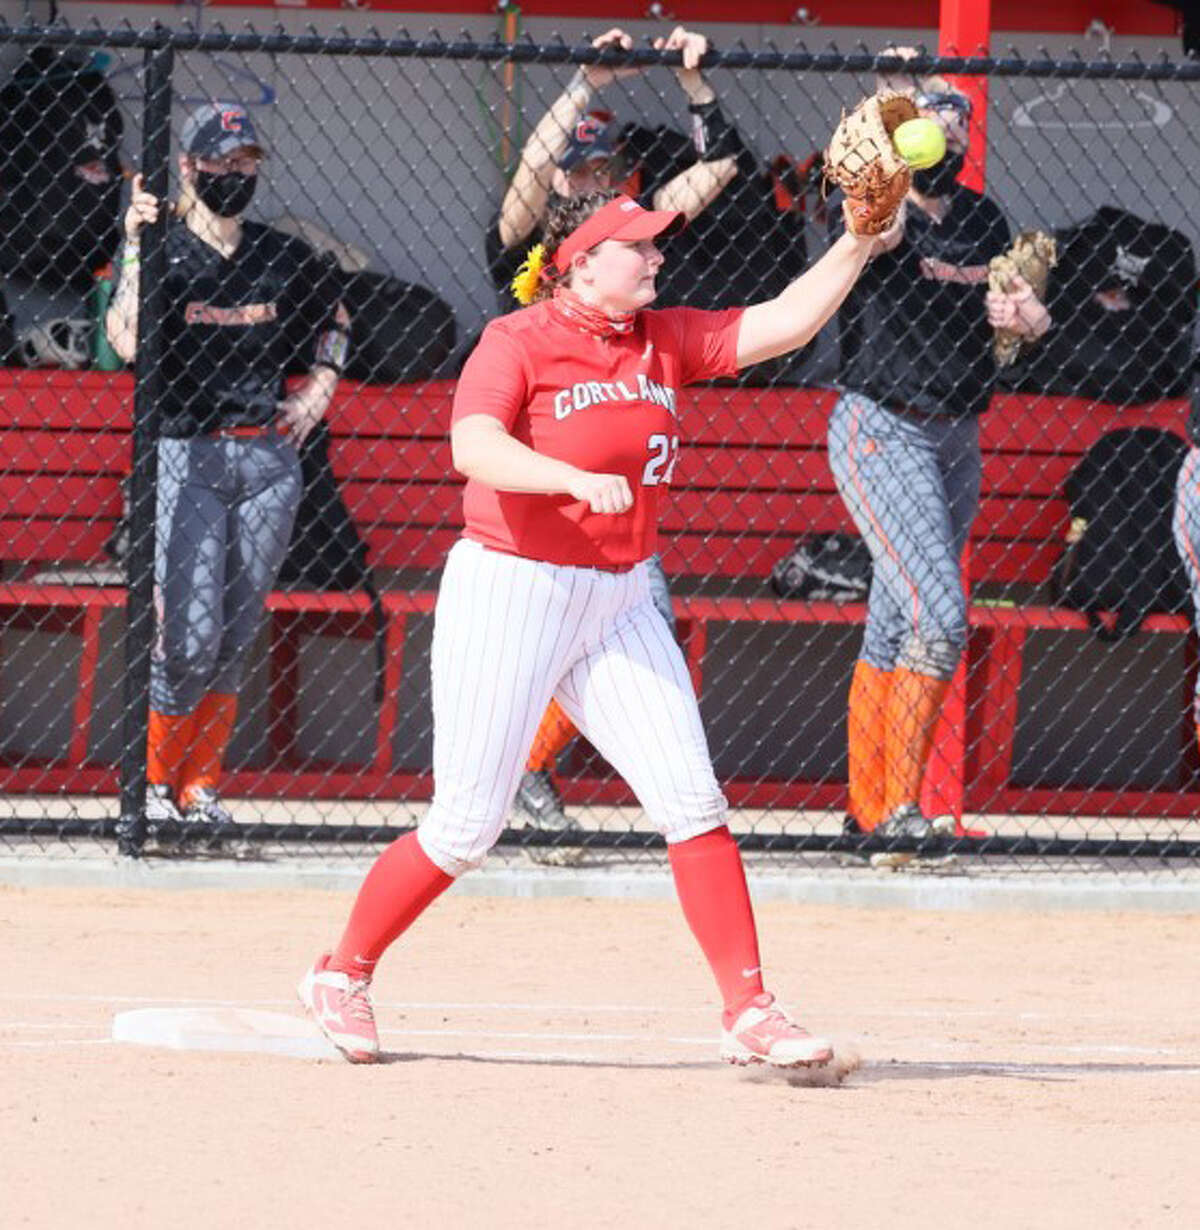 Colonie High graduate Lexi Szesnat plays first base for Cortland.